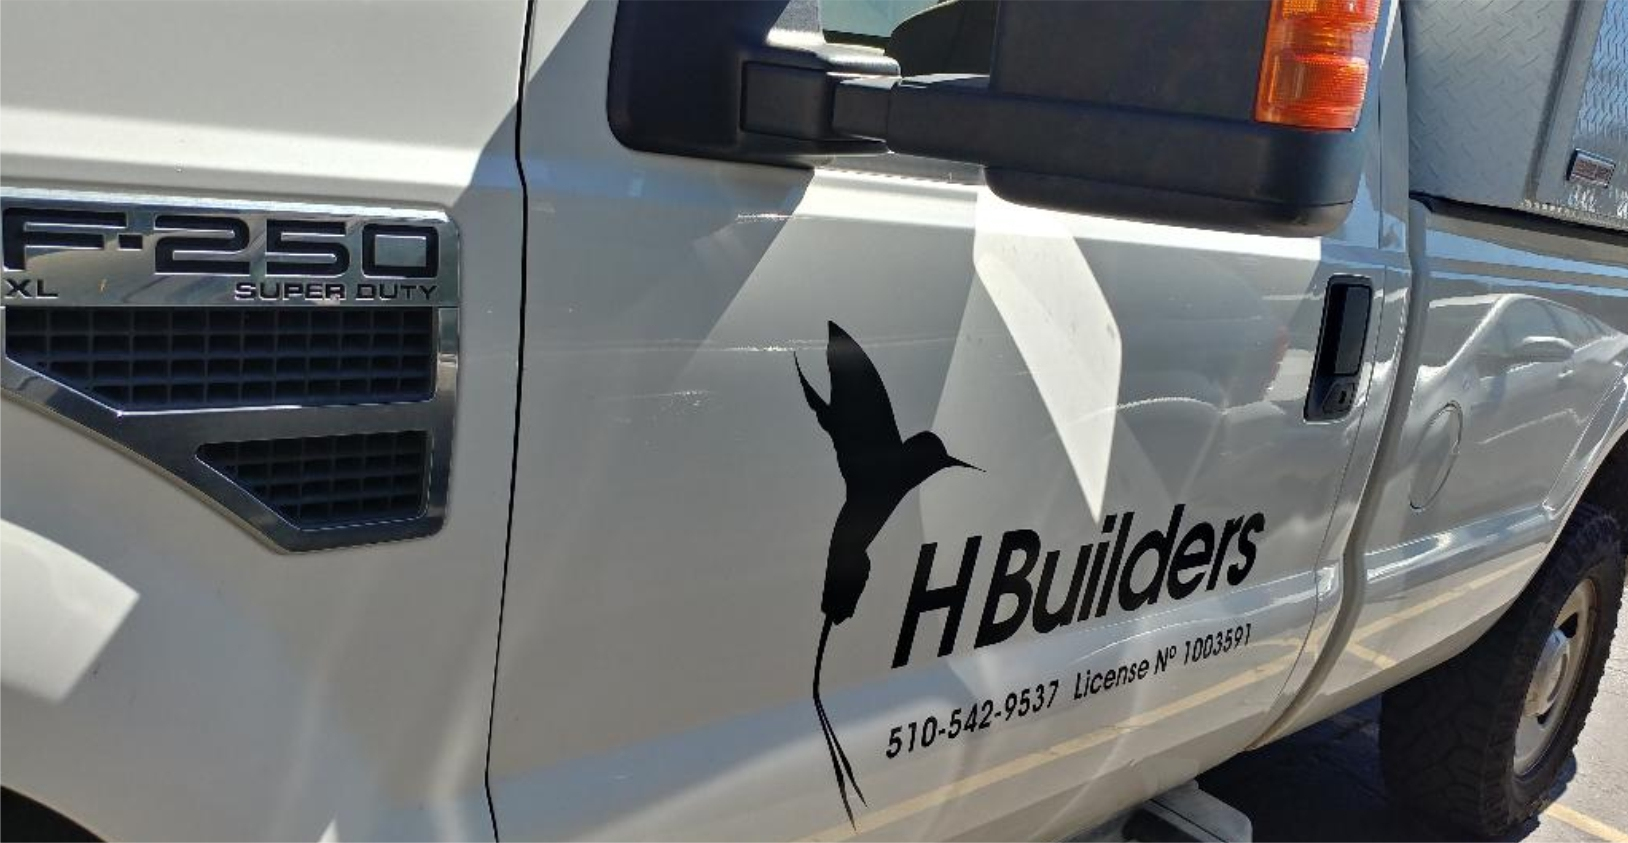 We apply vehicle graphics to fleets of trucks, one-of-a-kind racecars and even boats!